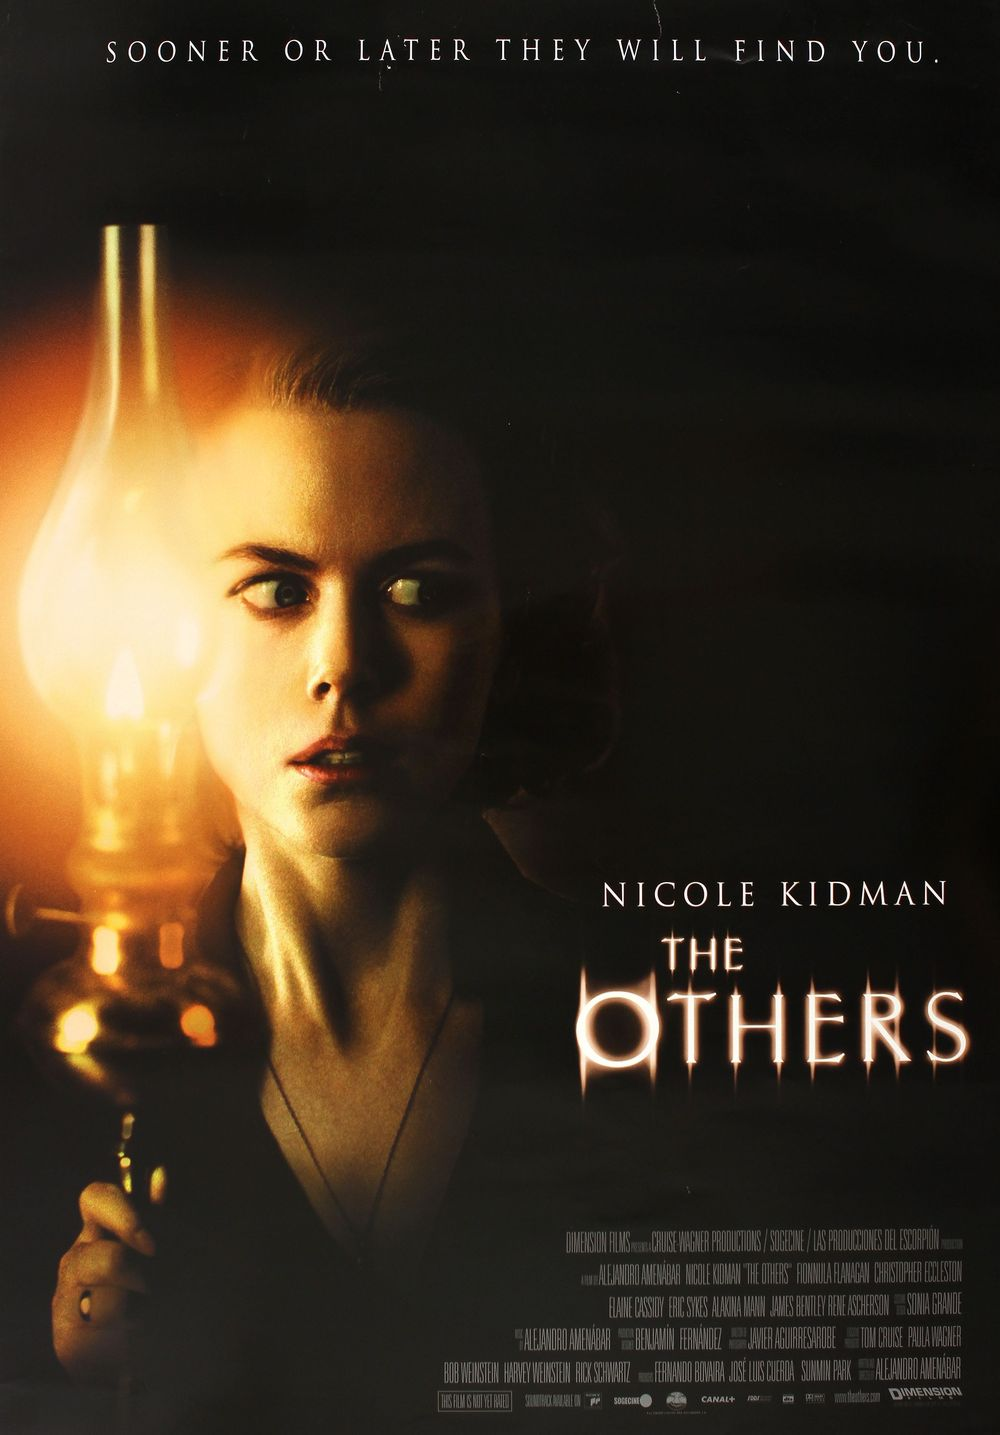 The Others 不速之嚇